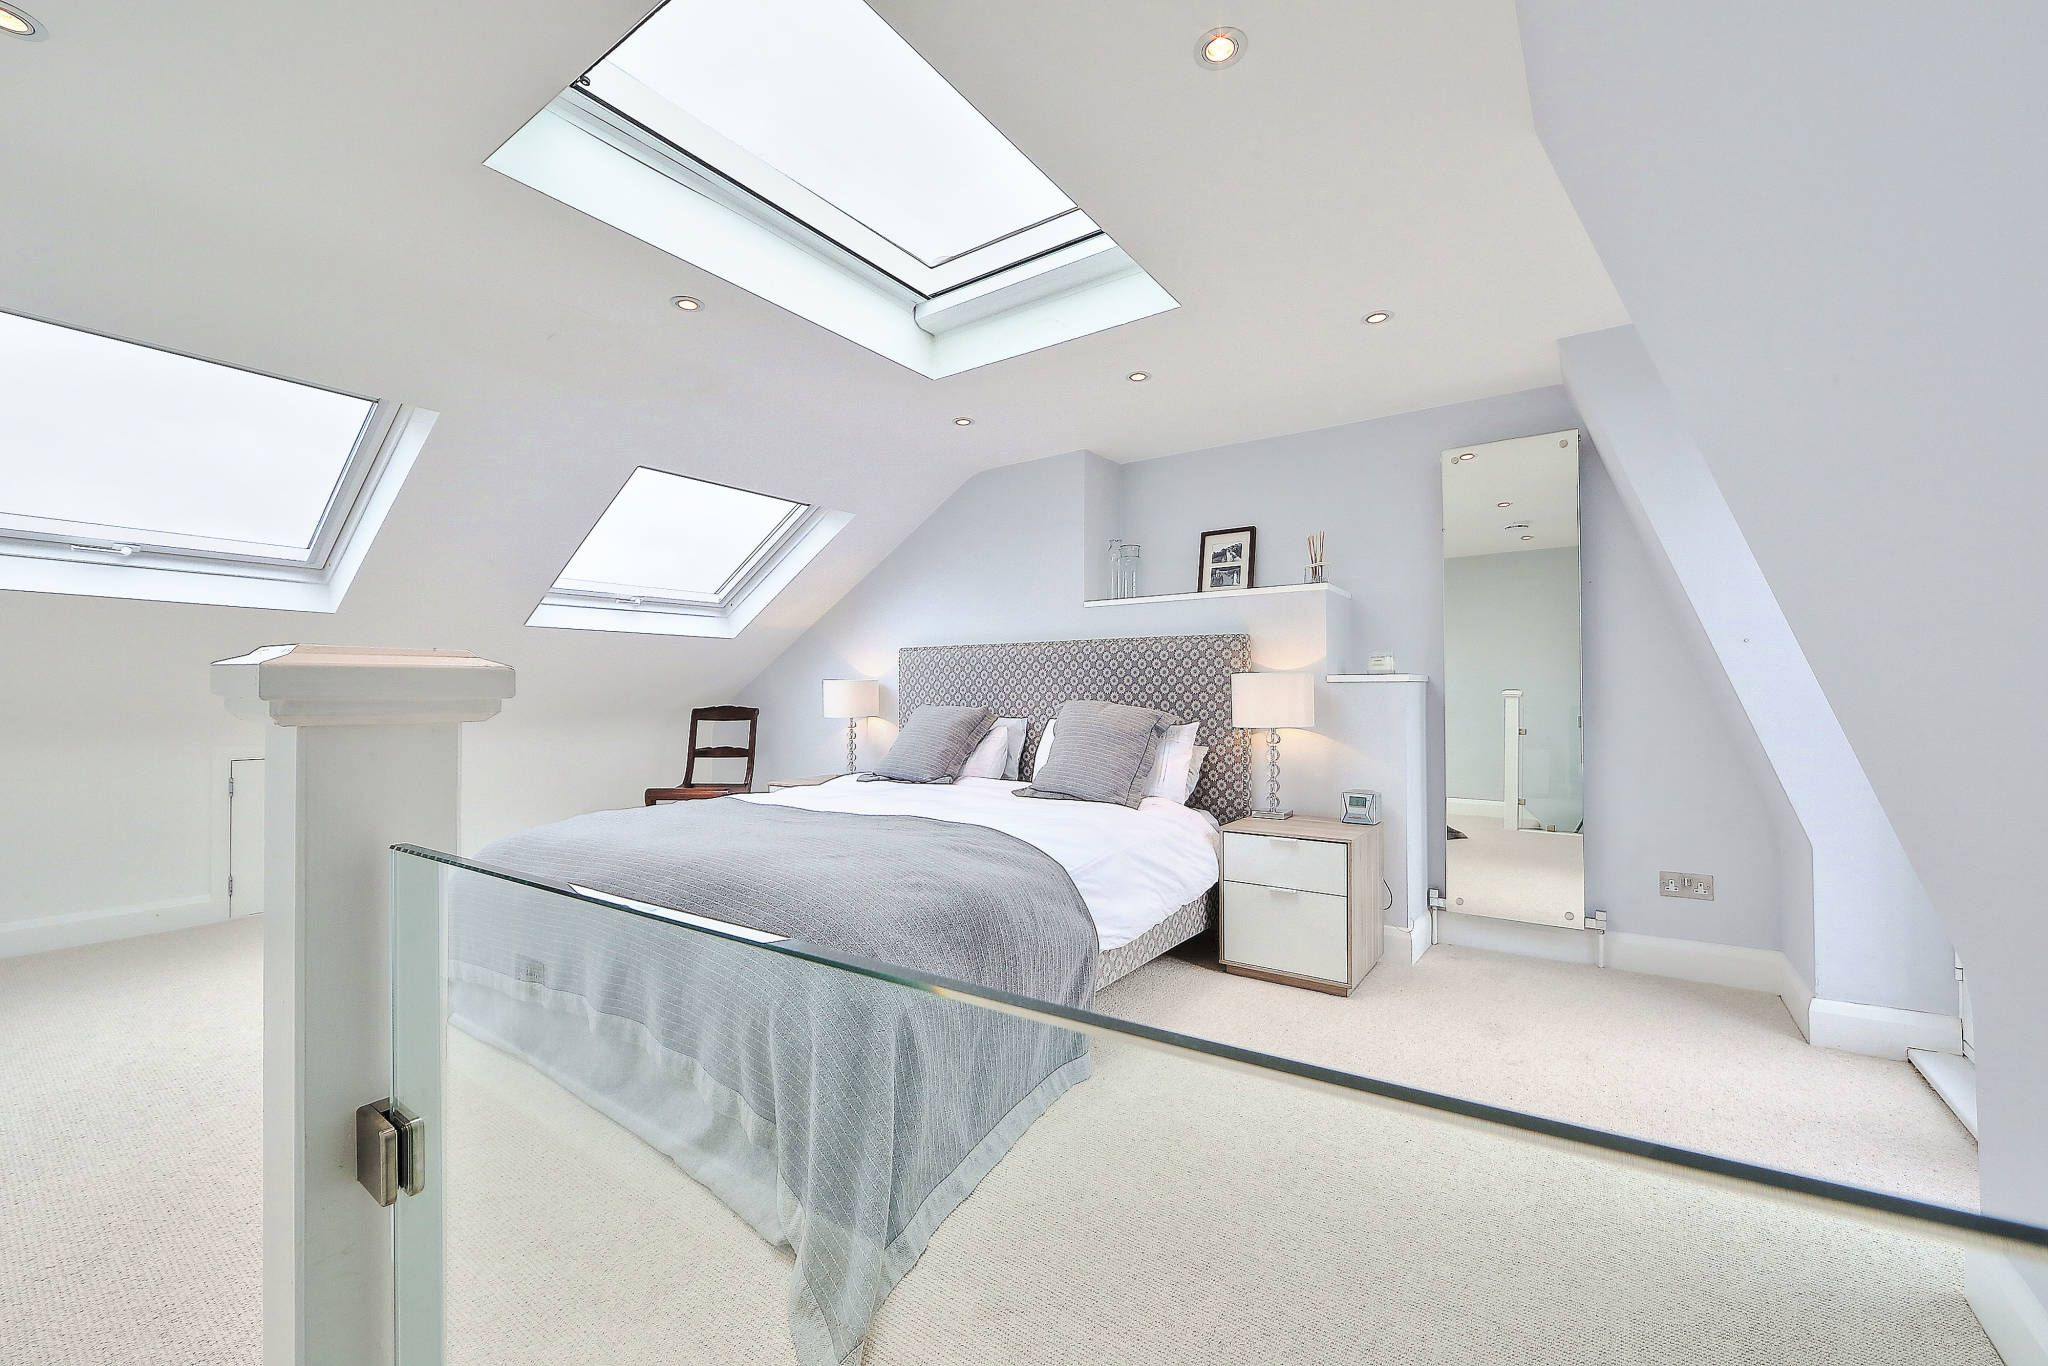 Loft bedroom ideas with ensuite  Interior Design Ideas Redecorating u Remodeling Photos  Wimbledon